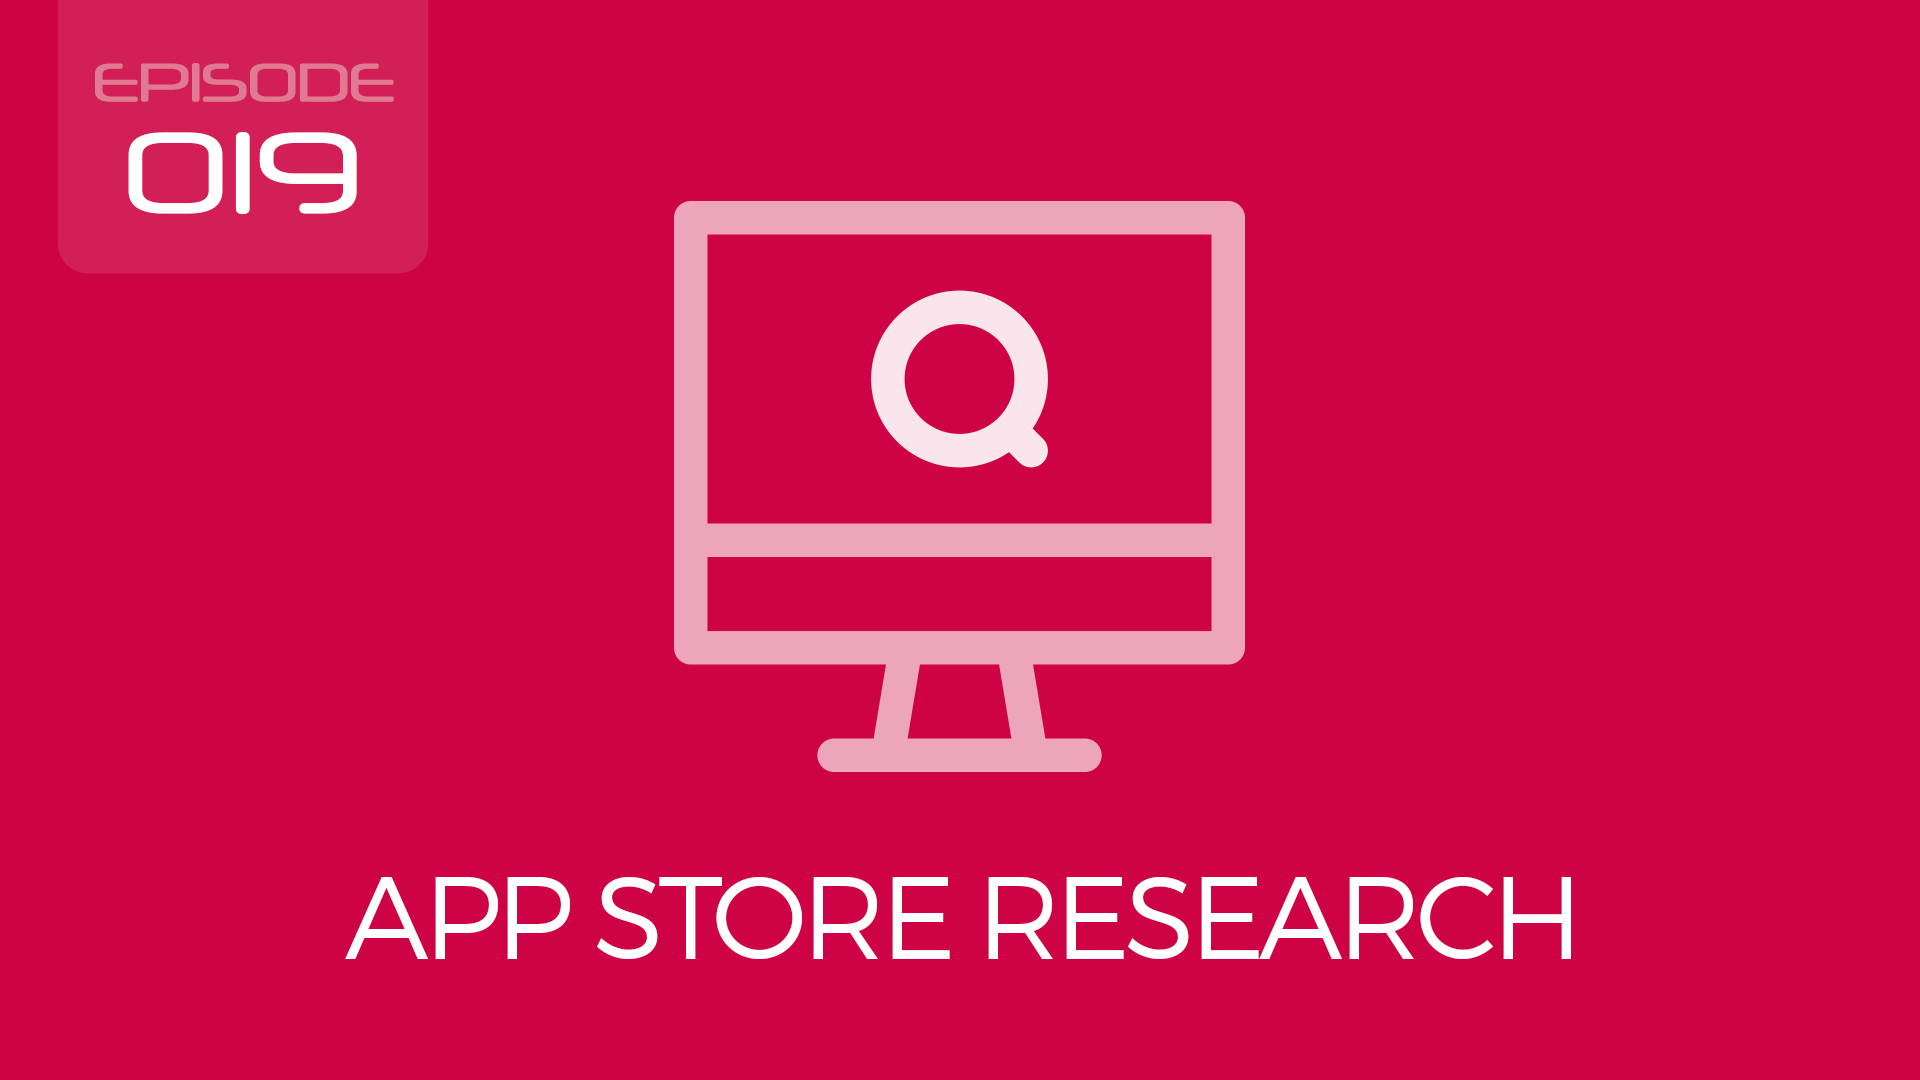 Episode - 019 - App Store Research